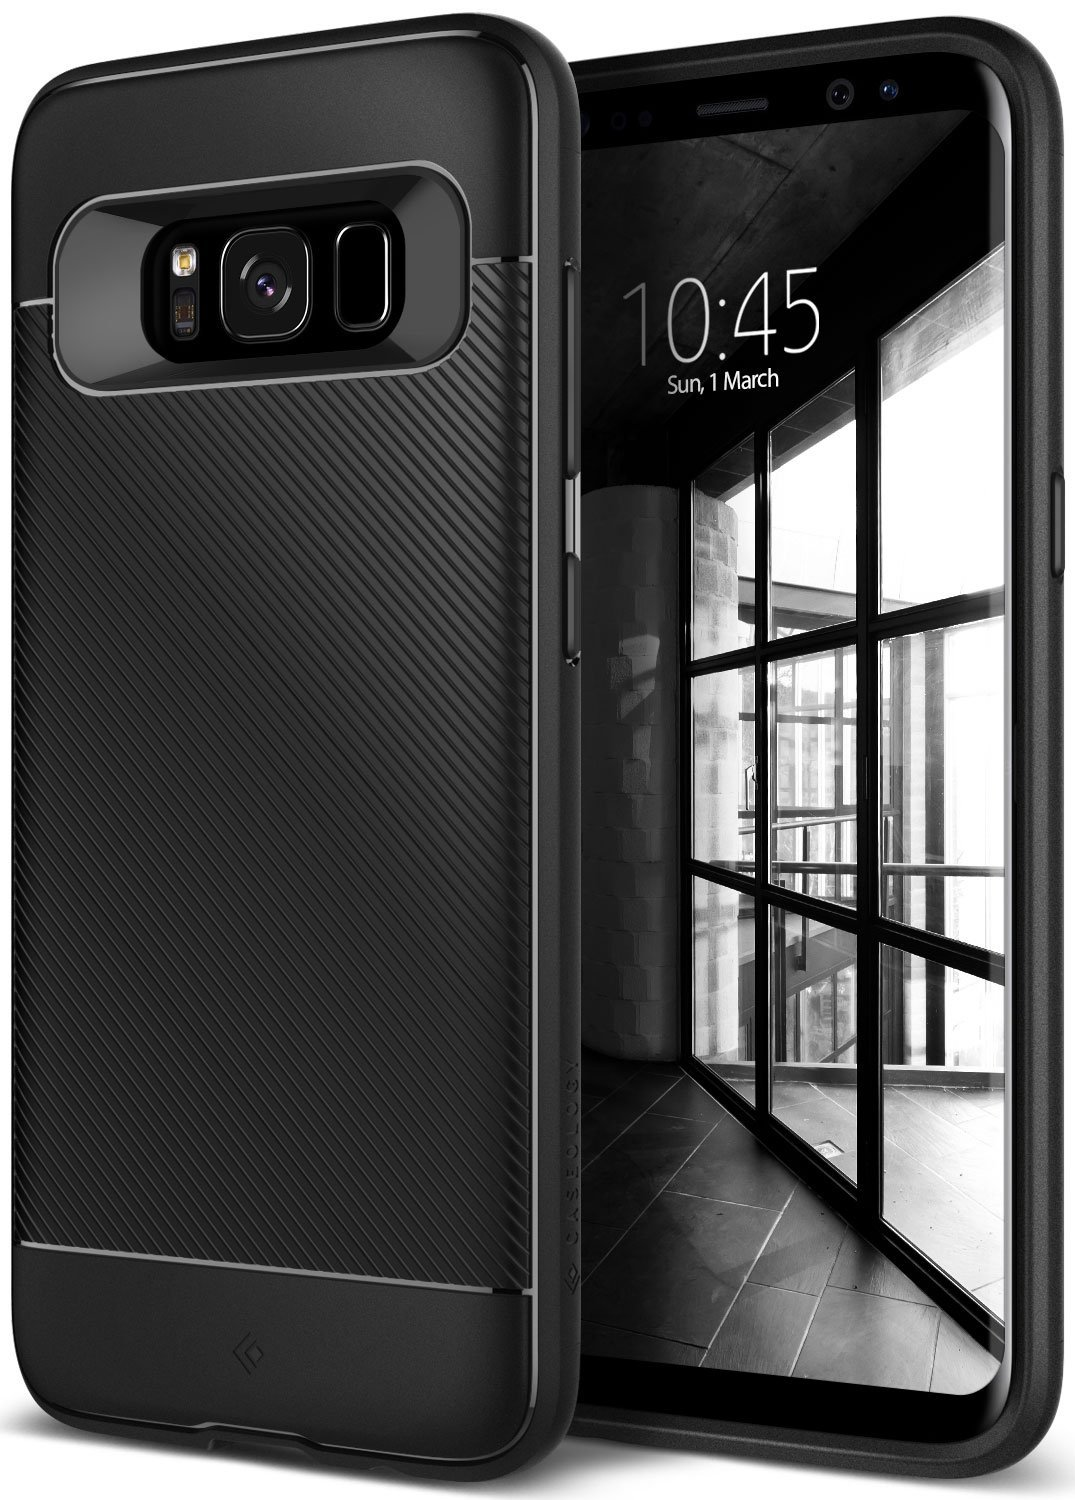 Best Samsung Galaxy S8 Cases Spigen Ultra Hybrid Case For Jet Black Caseology Also Makes Some Great The Theres A Whole Bunch Of Colors And Styles So If Youre Looking Something With Different